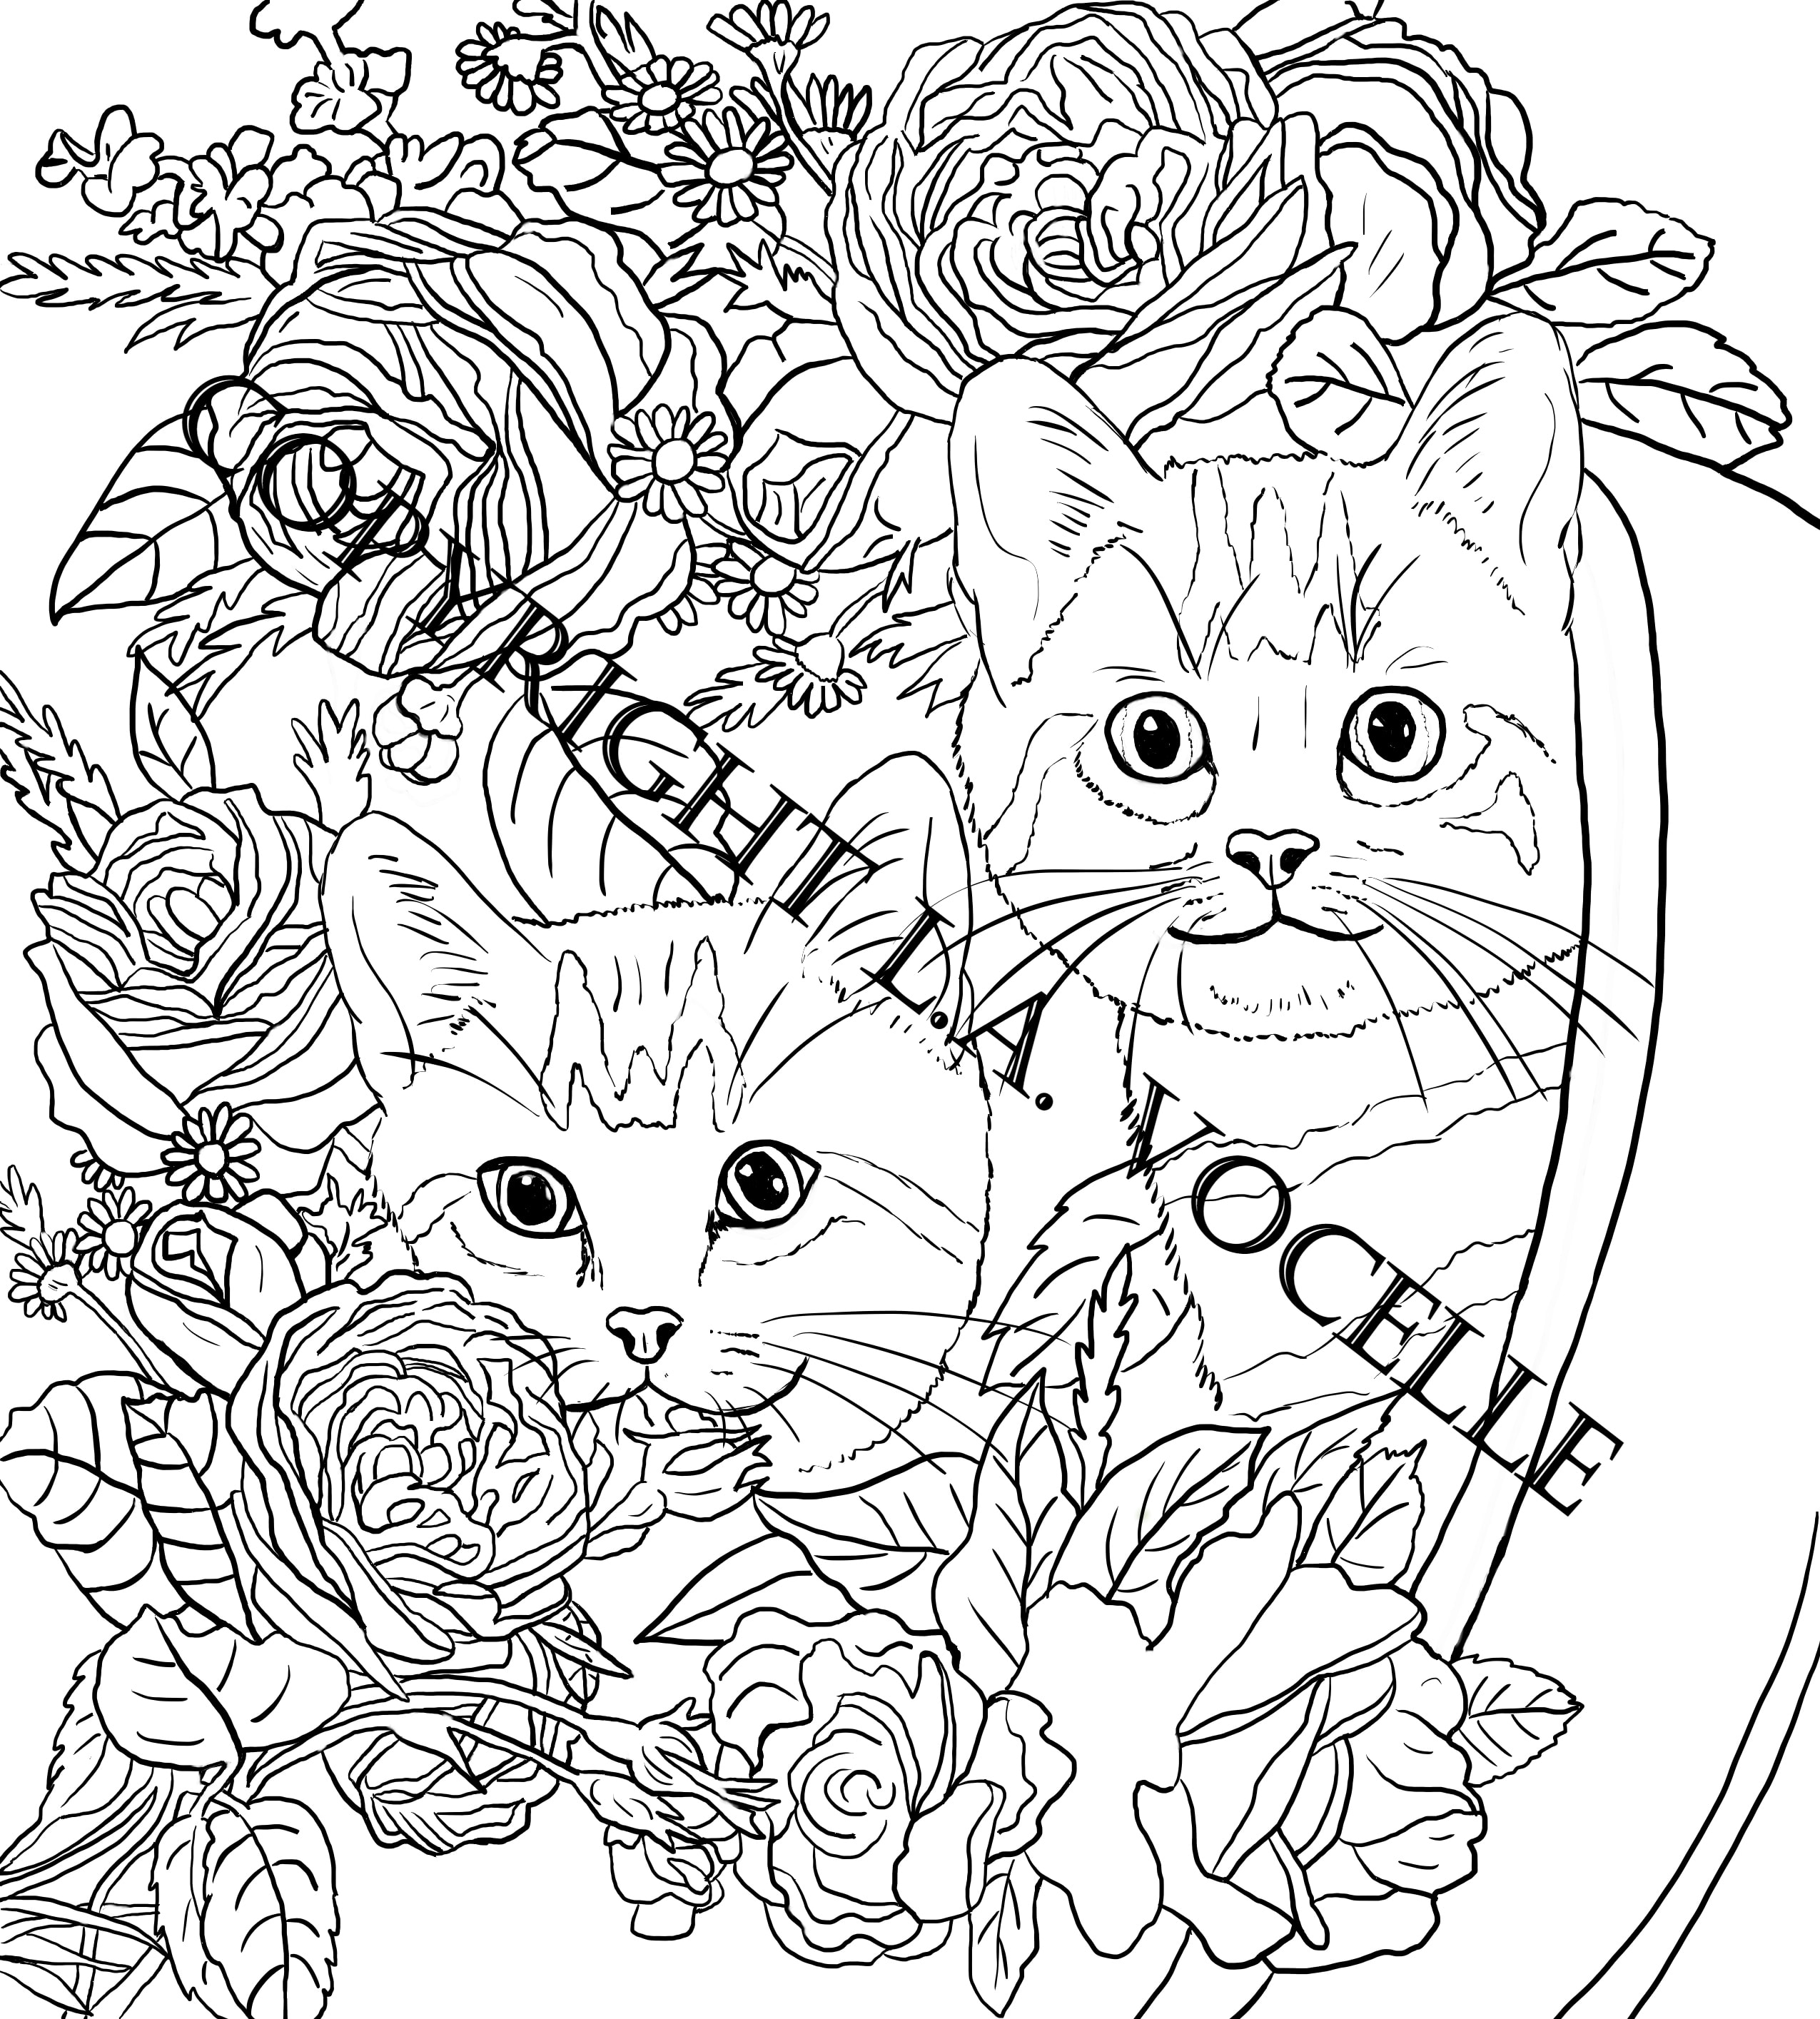 Buy Now Cats And Flowers Coloring Book Pagetwo Kittens In A Pot